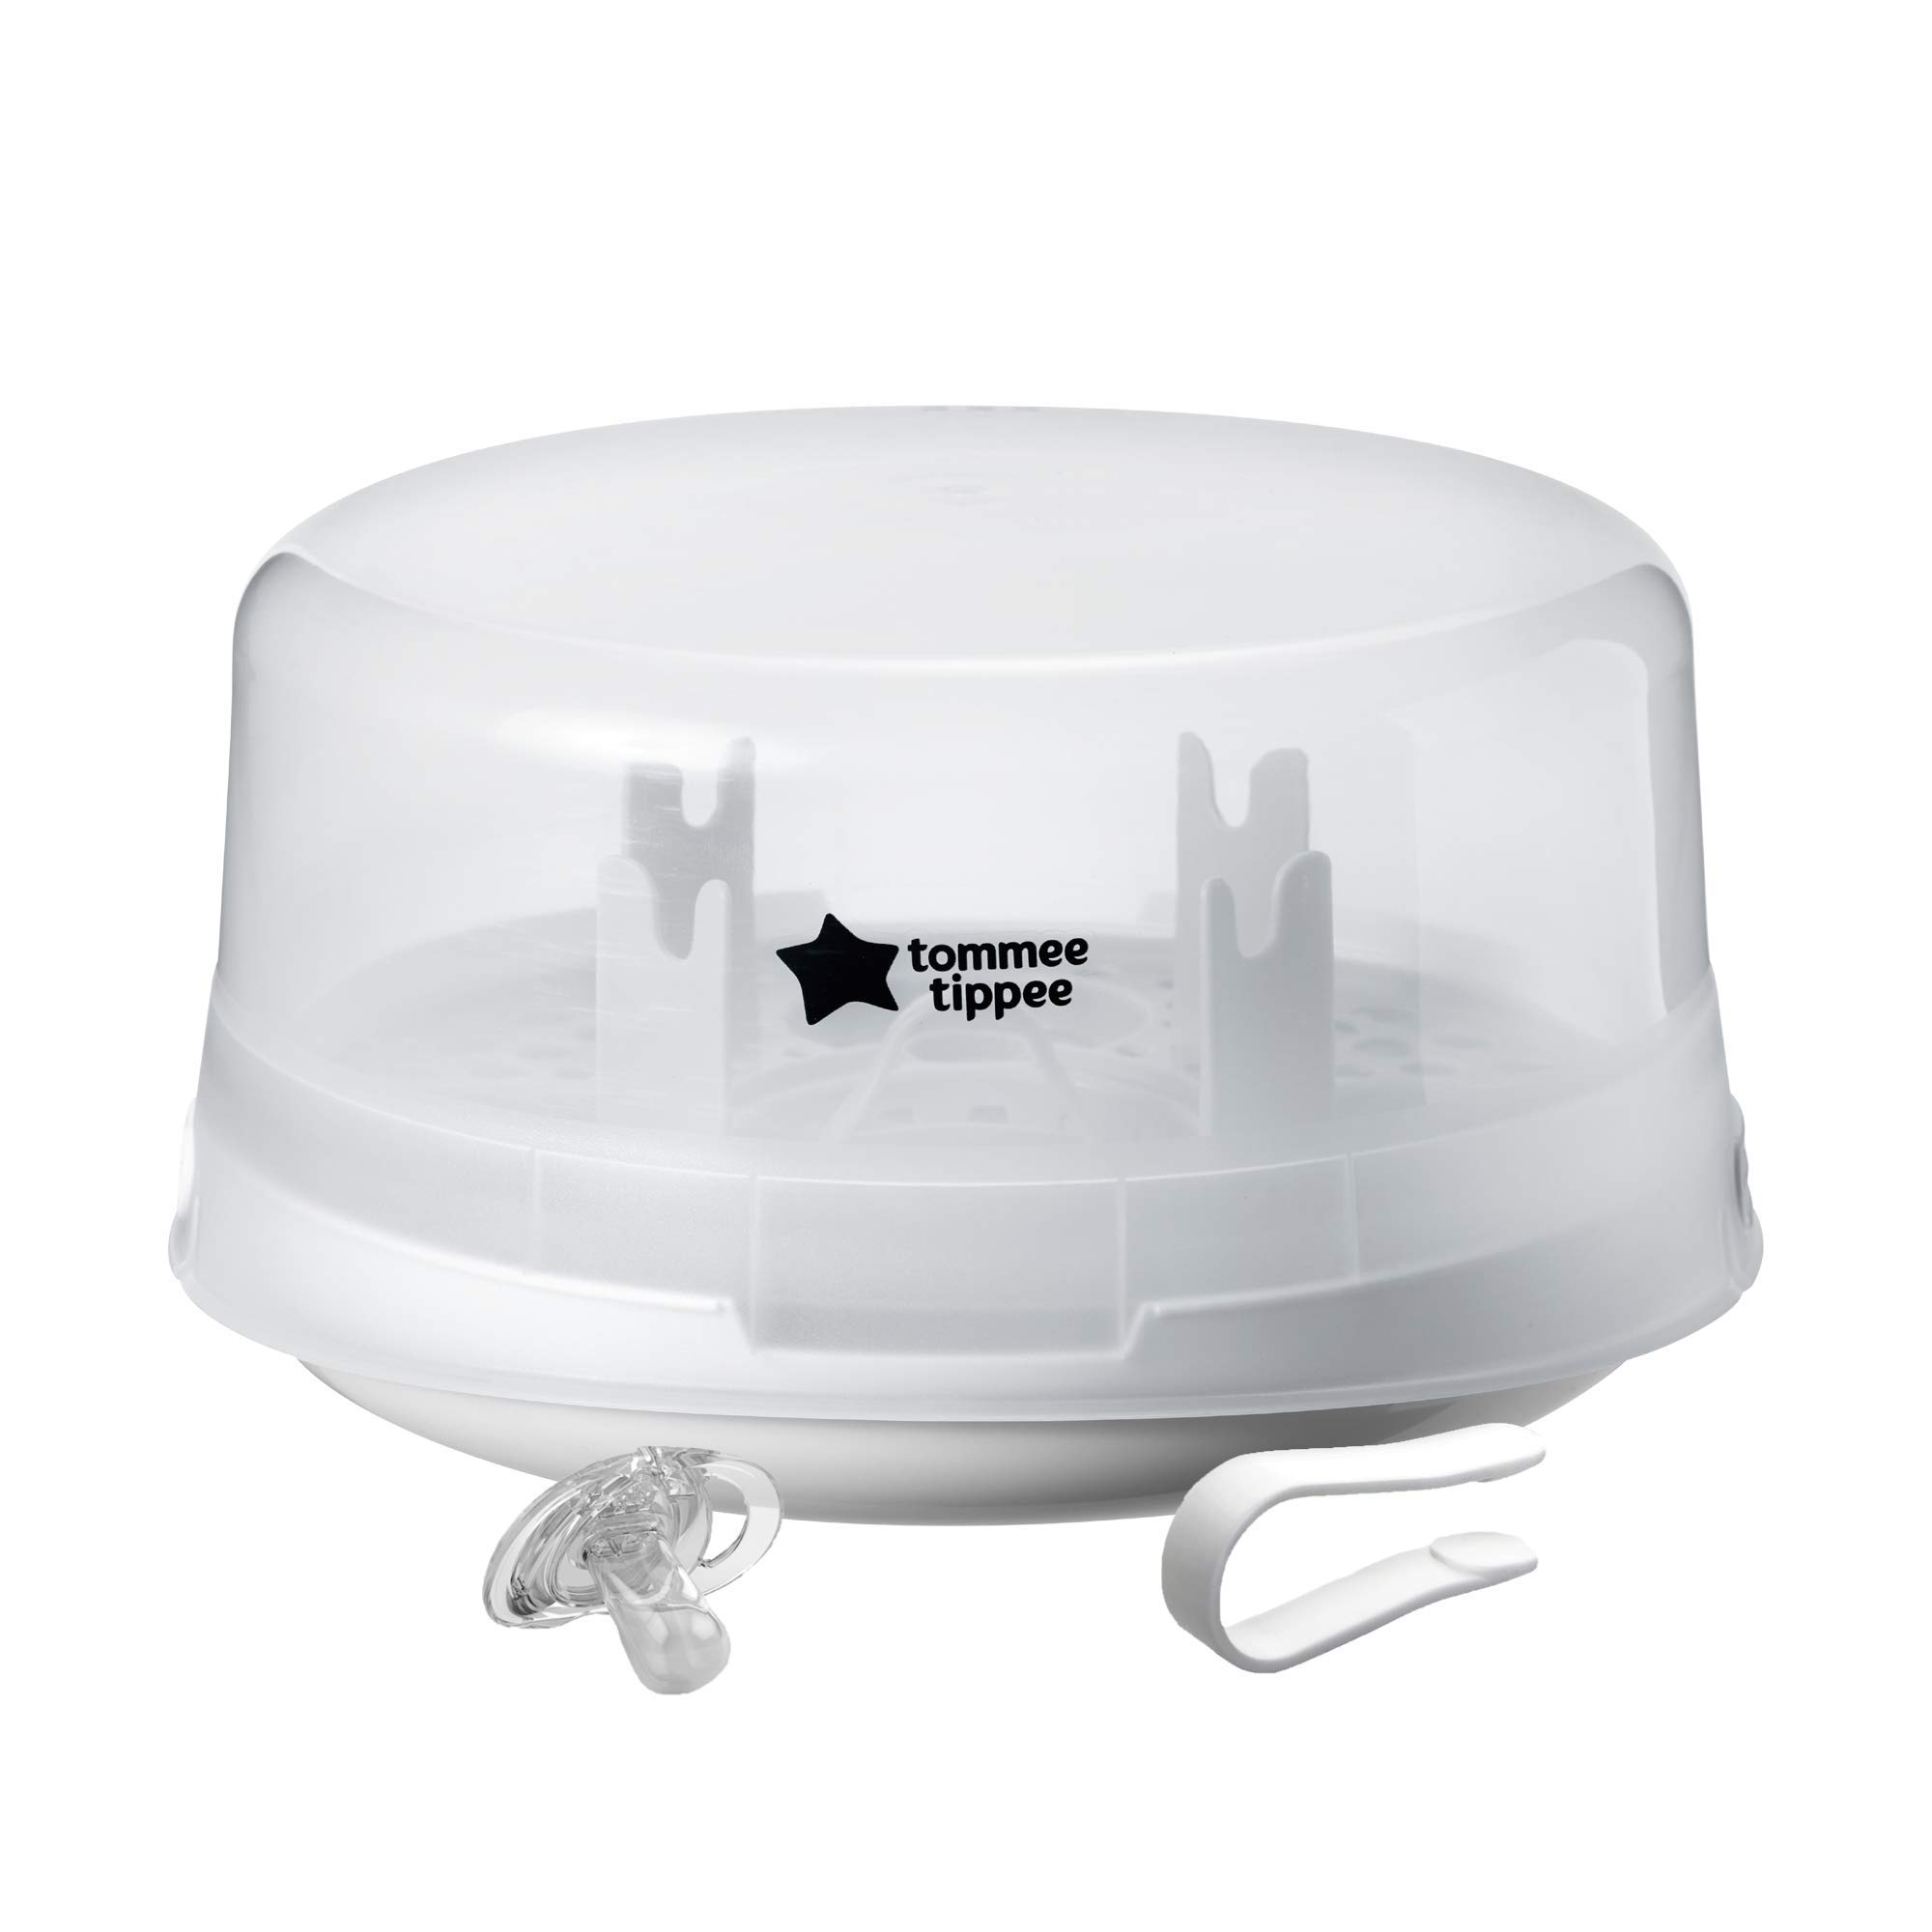 Tommee Tippee Microwave Travel Steam Baby Bottle Sterilizer - Sterilize 4 Bottles at Once in 4-8 minutes - BPA Free by Tommee Tippee